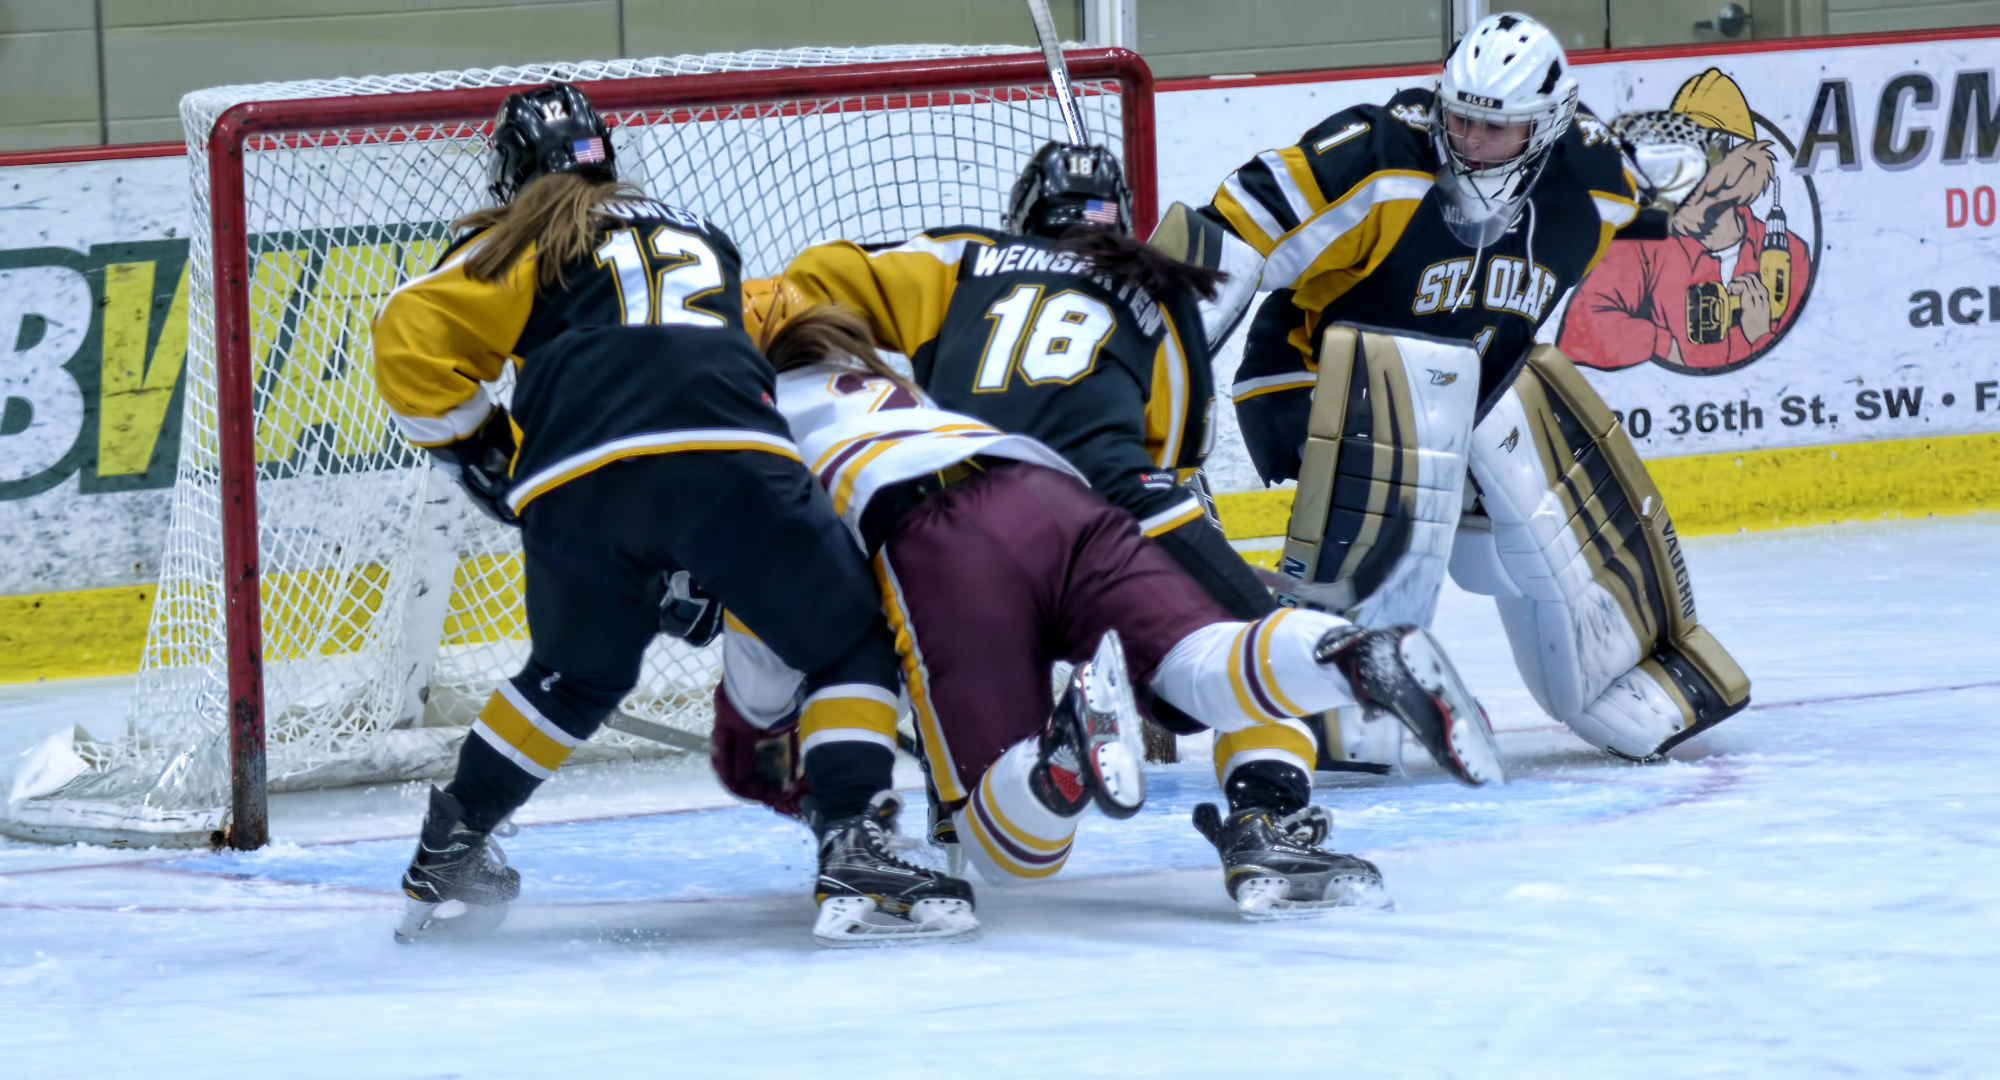 Amanda Flemming dives between two St. Olaf players to tap in a goal during the second period of the Cobbers' 5-3 win over the Oles.